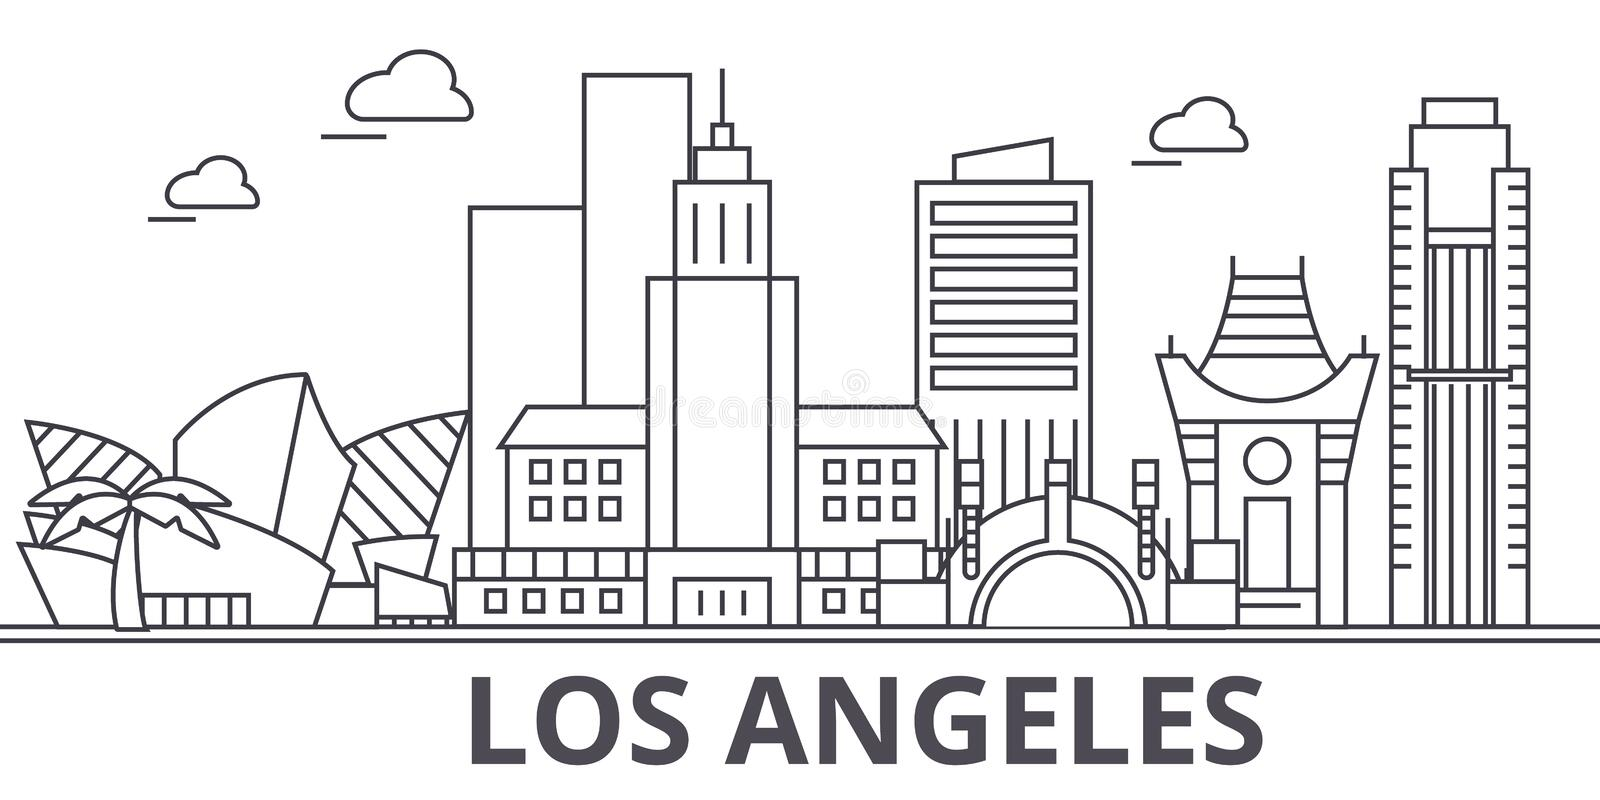 Los Angeles architecture line skyline illustration. Linear vector cityscape with famous landmarks, city sights, design. Icons. Editable strokes royalty free illustration